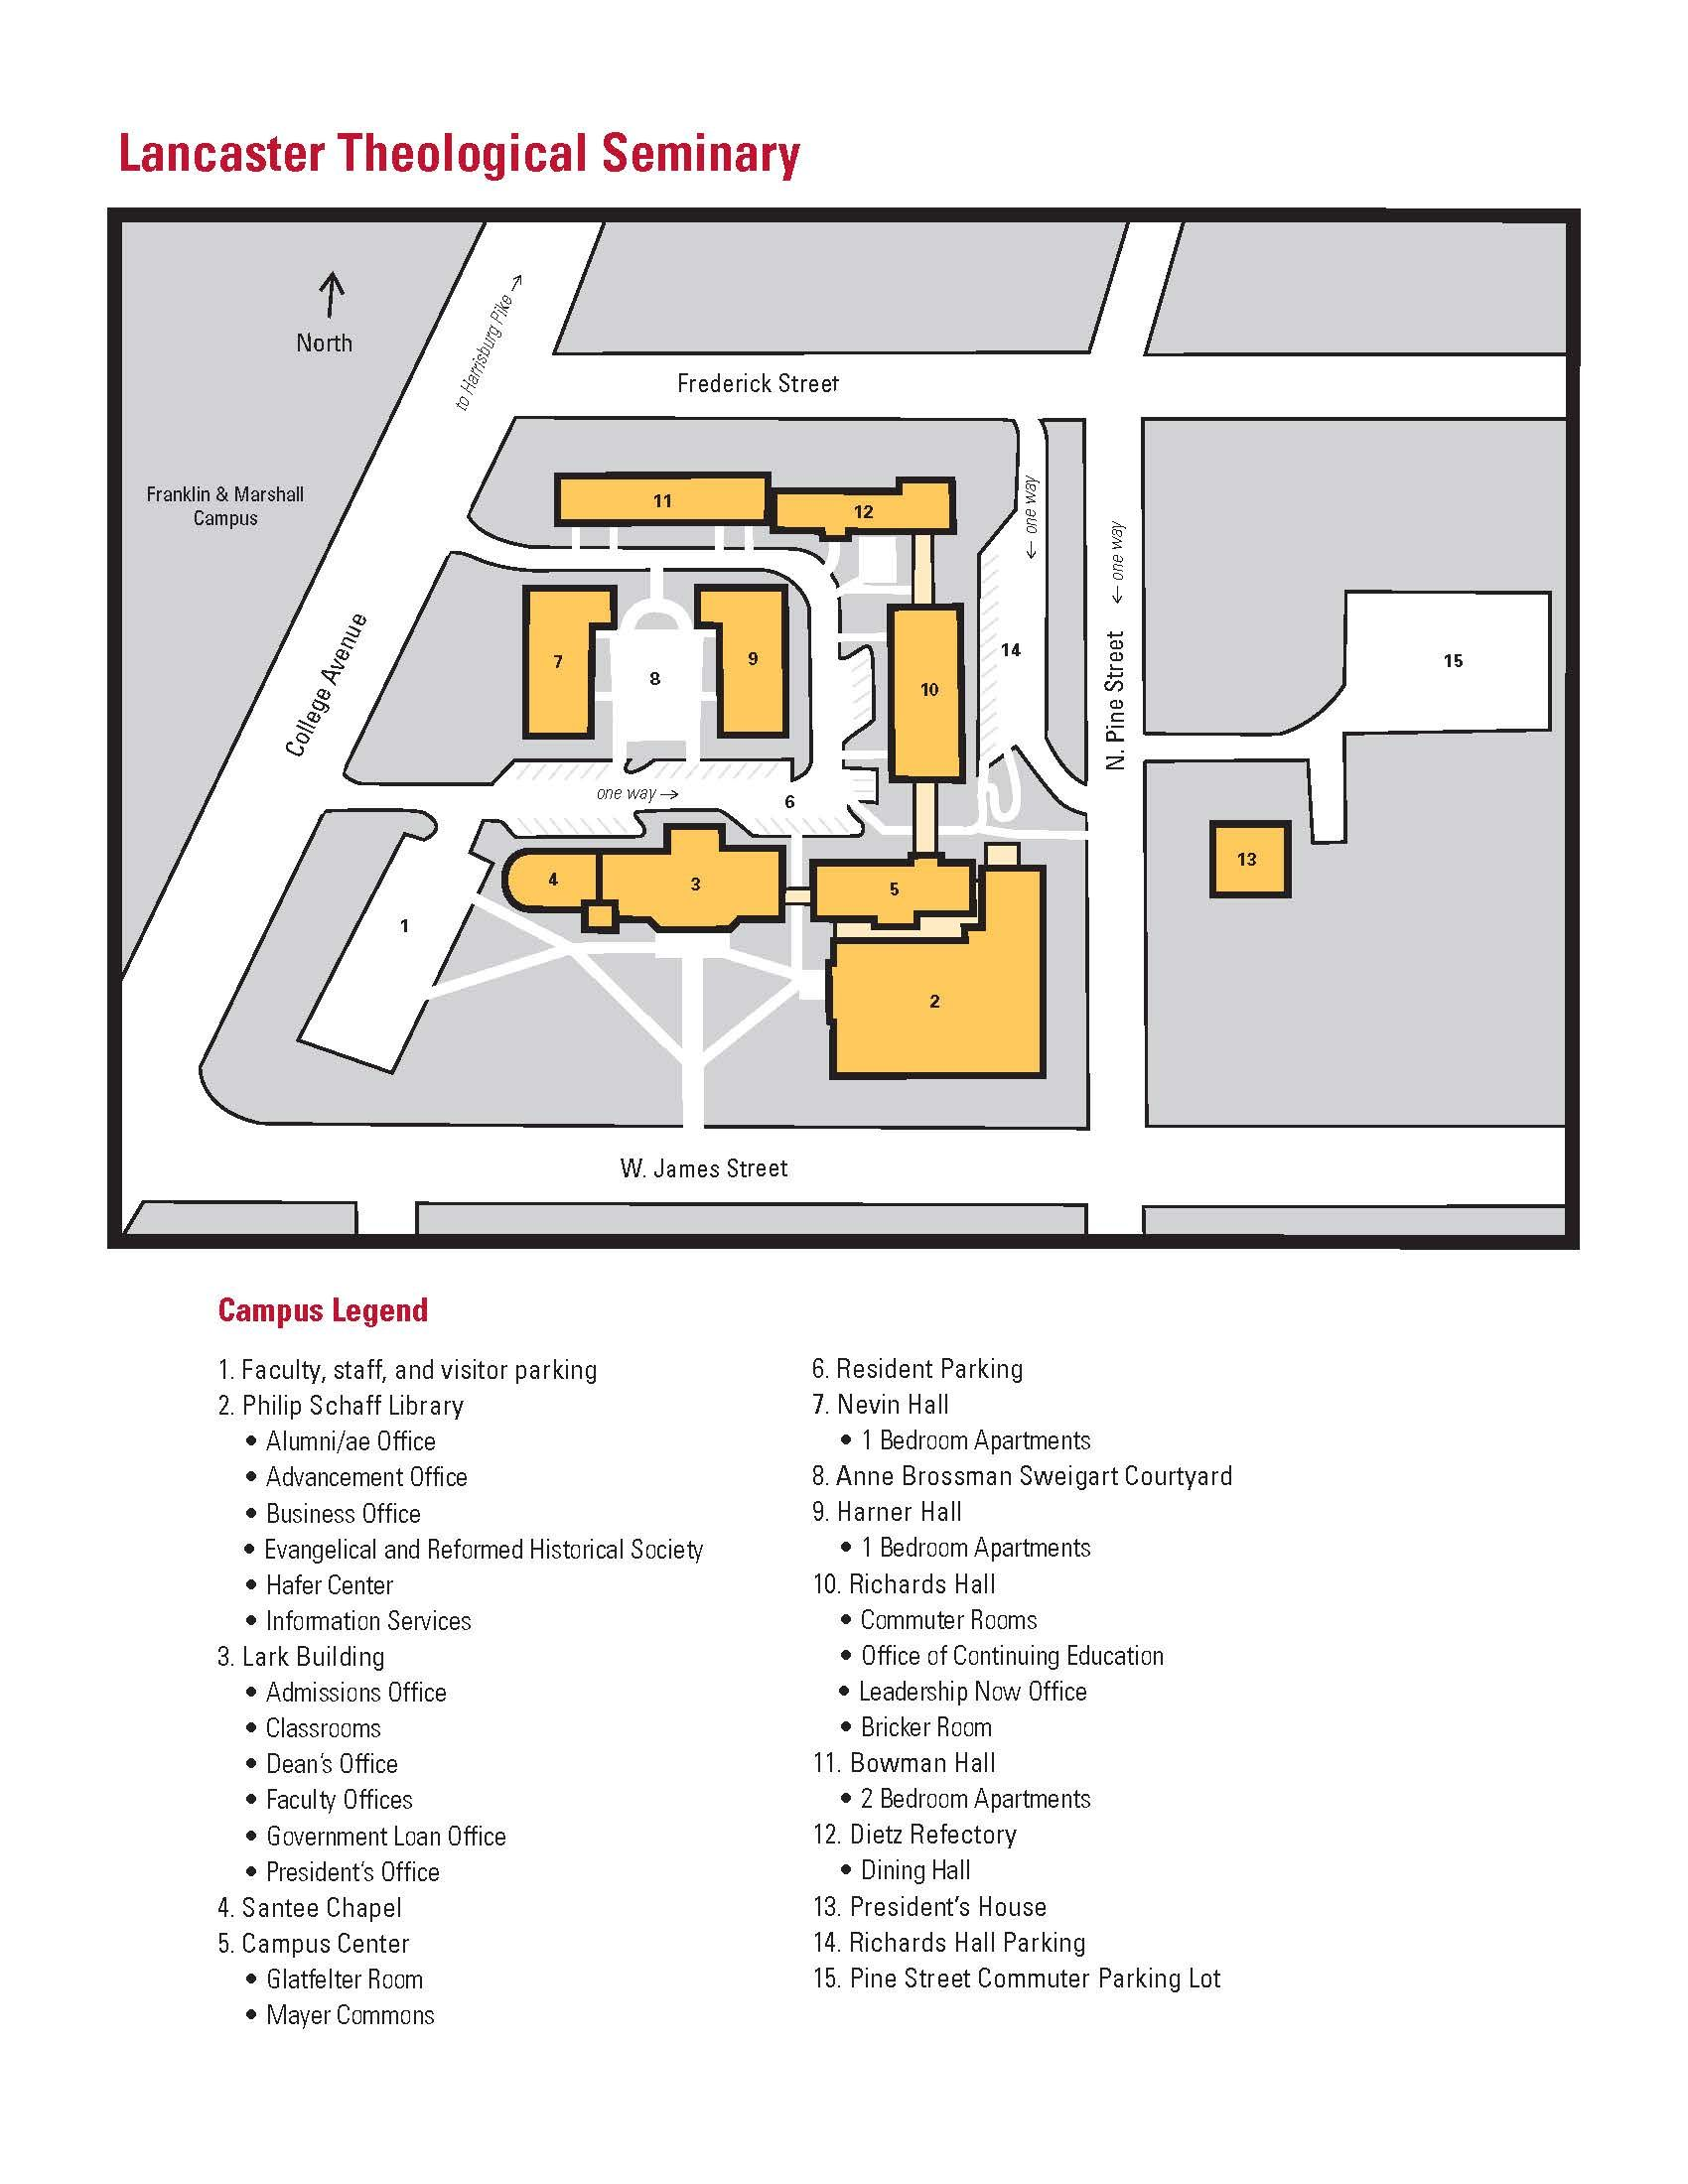 Map Of Lts Campus Lancaster Theological Seminary Campus Seminary Lancaster